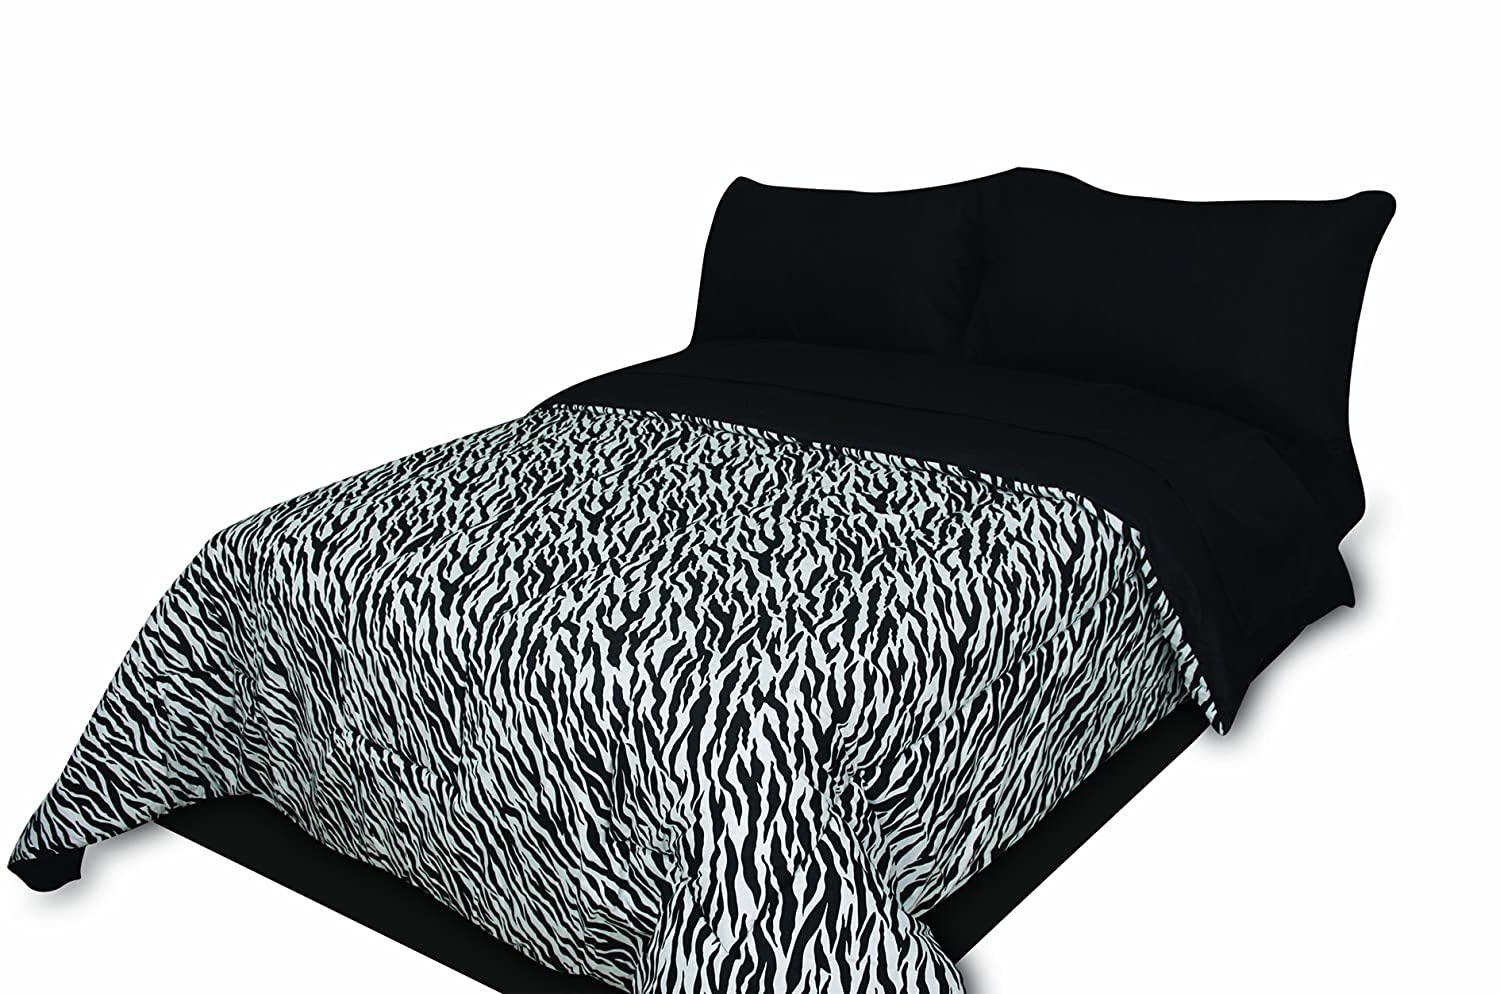 Divatex Home Fashions 75 GSM Super Soft Microfiber Mini Bed in The Bag, Zebra Black/White, Twin Extra Long 348233ZEB-TXL